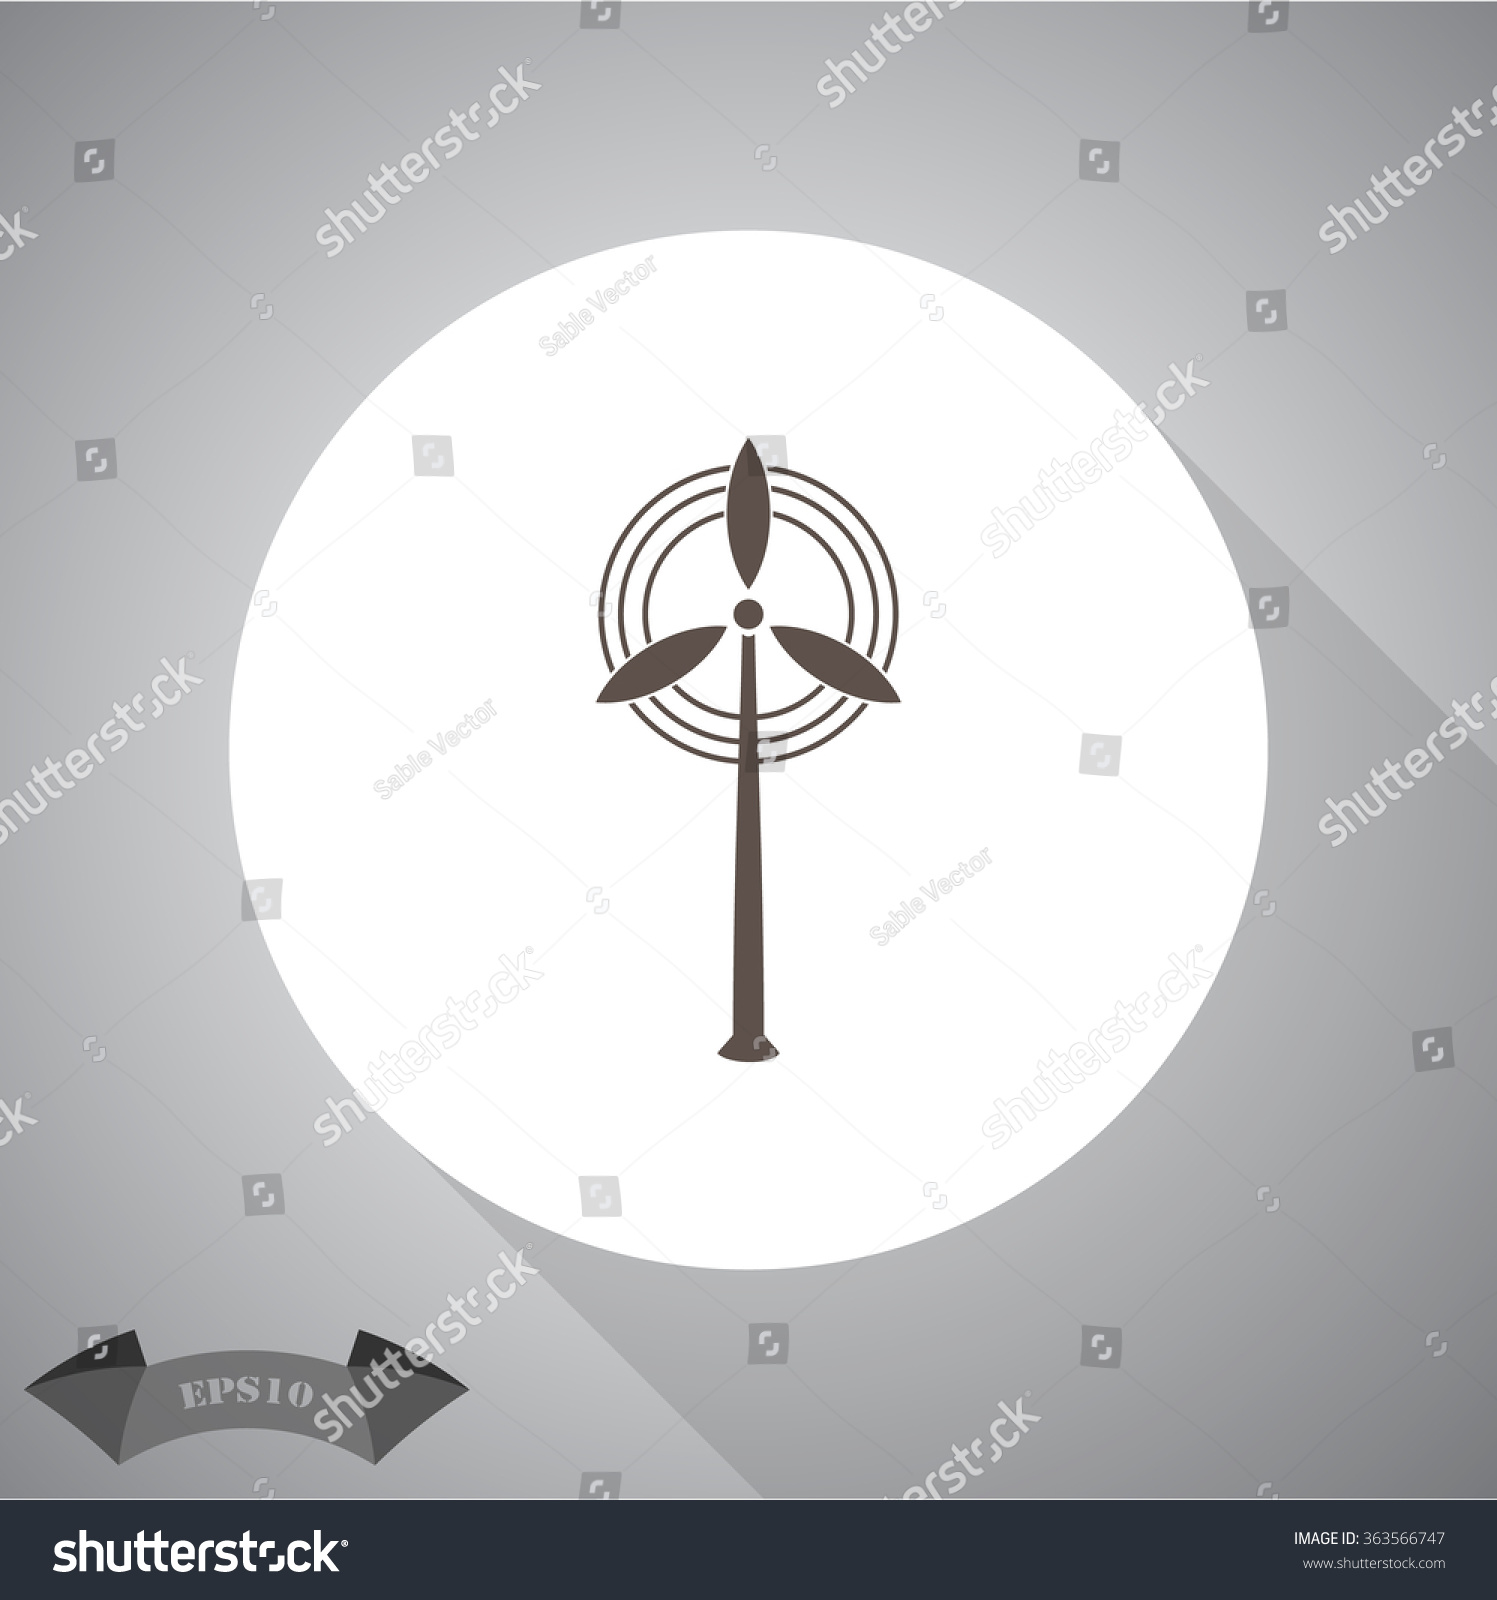 Perfect Symbol For Generator Vignette - Electrical Diagram Ideas ...